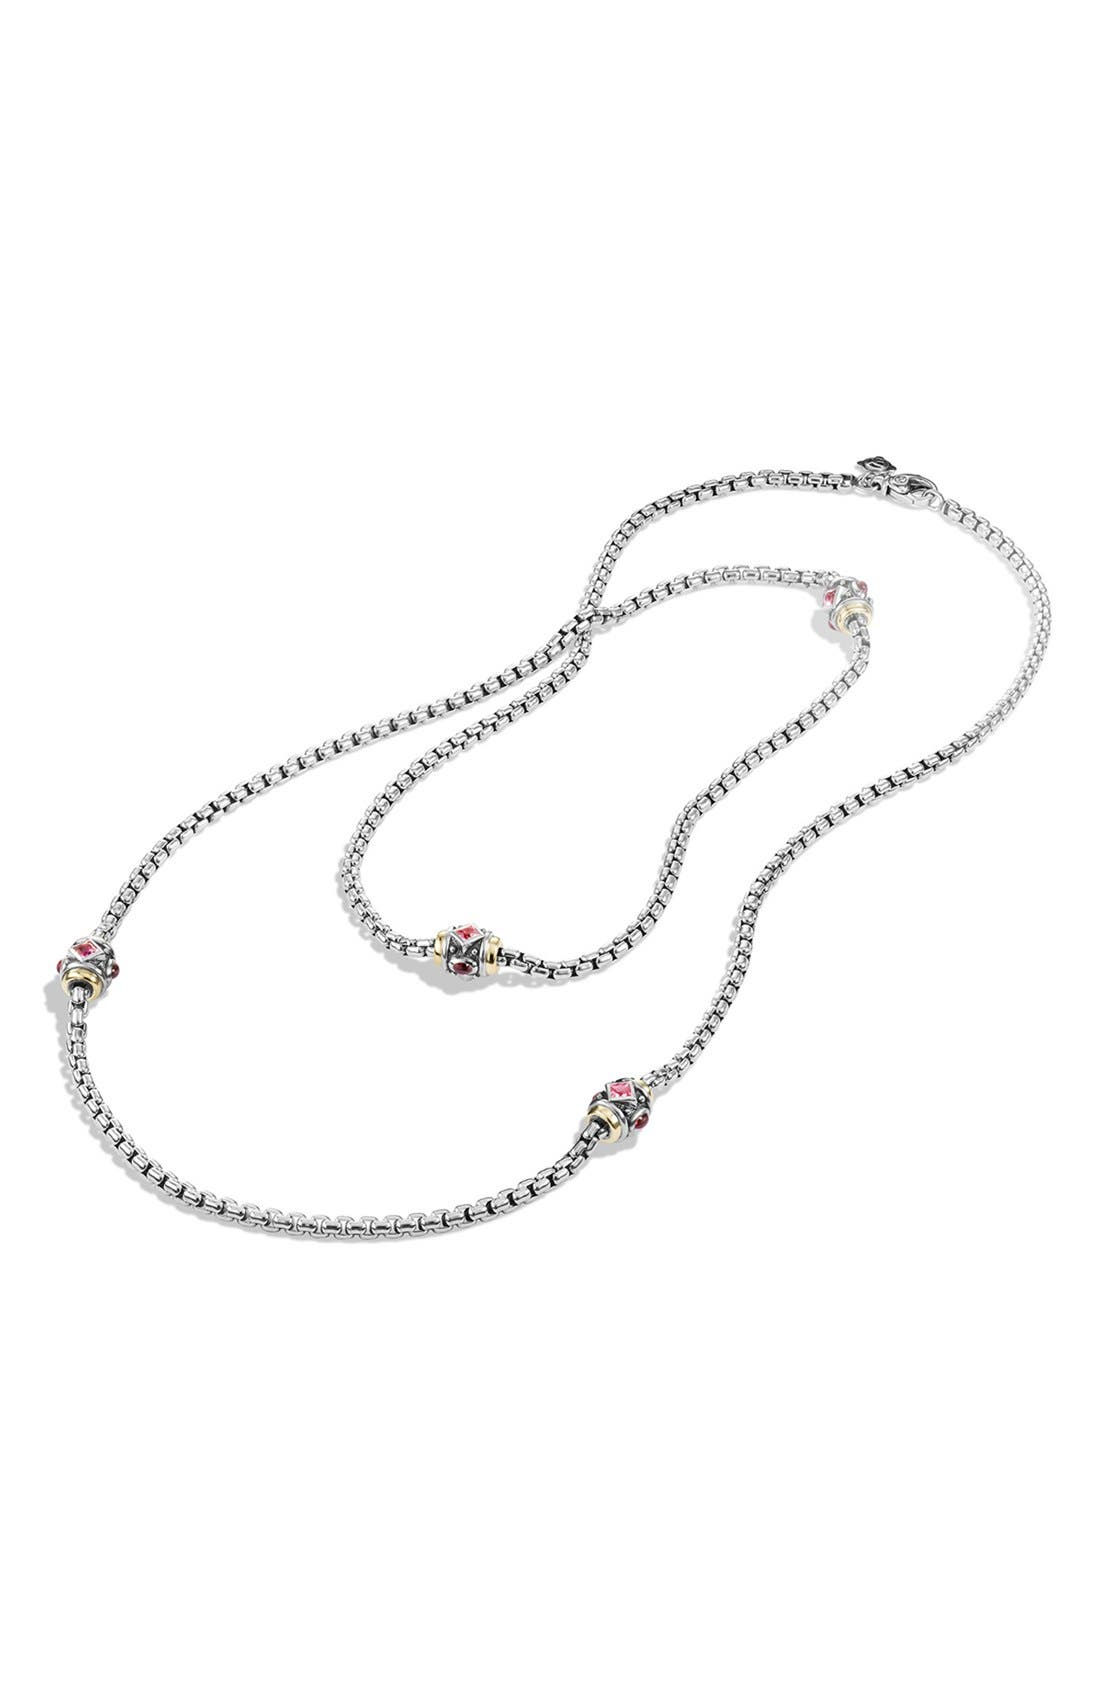 Alternate Image 2  - David Yurman 'Renaissance' Necklace with Semiprecious Stone and 18k Gold